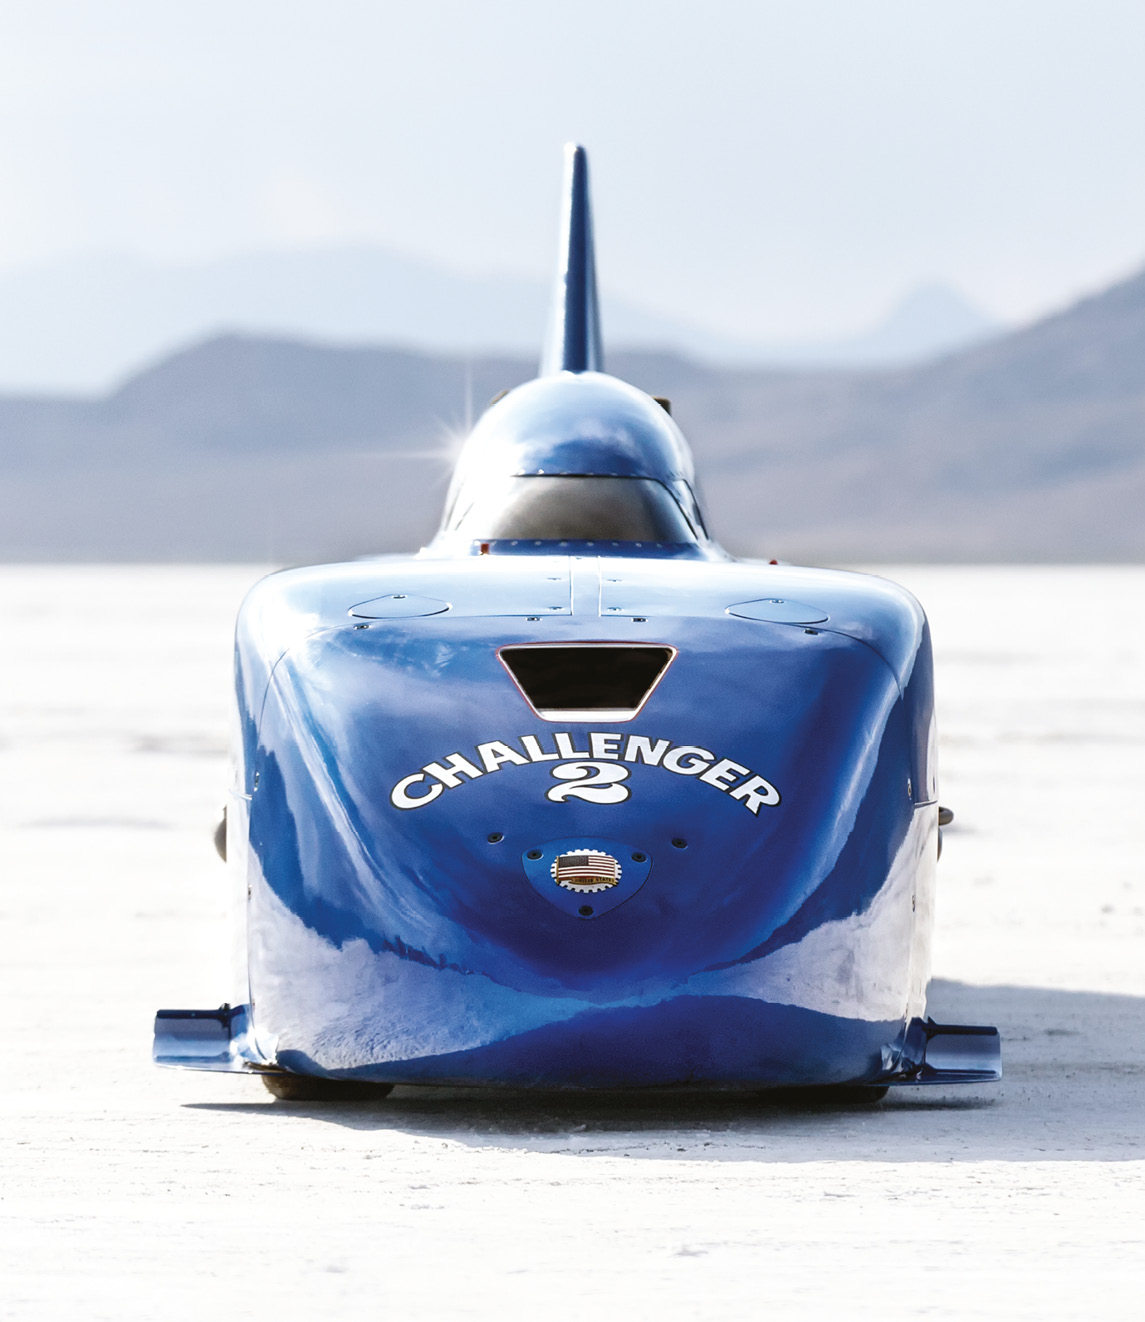 Now boasting three times the power it used to have, Challenger II hit 450.9mph